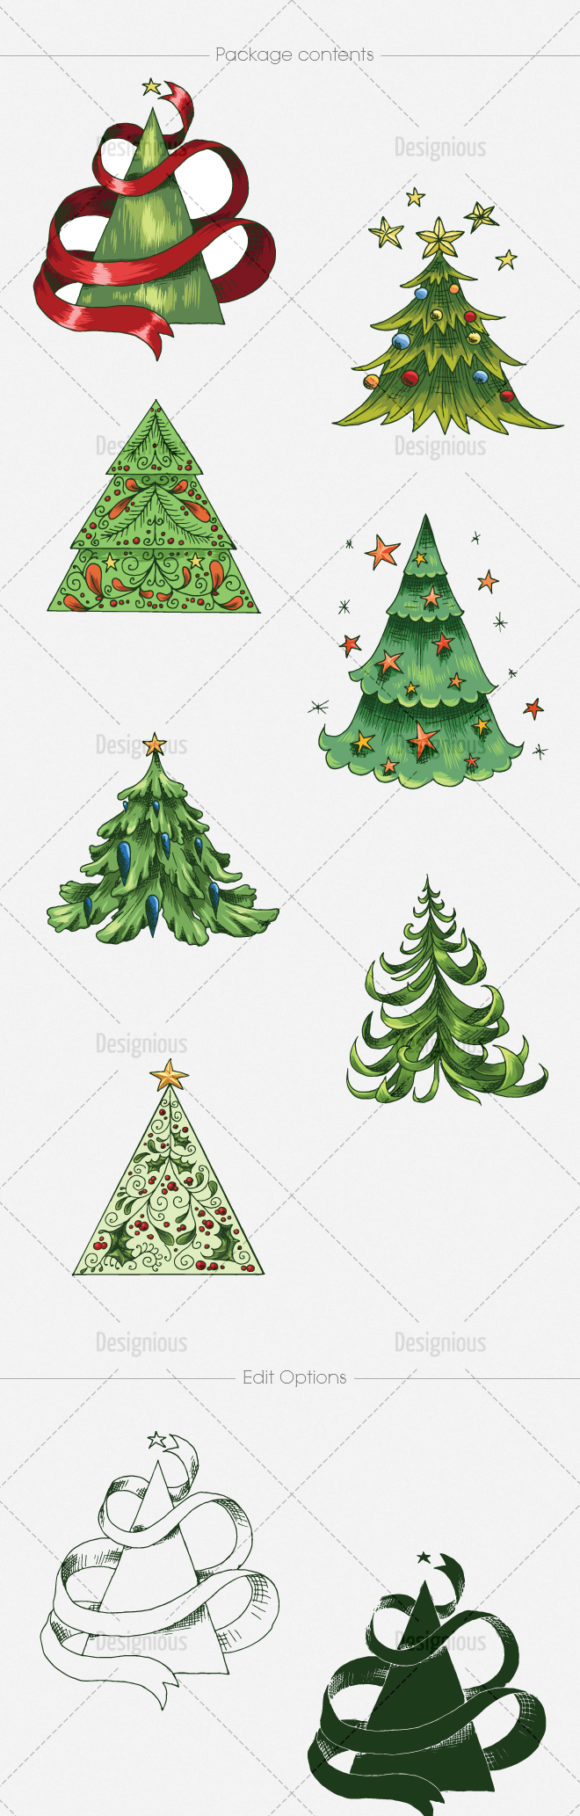 Christmas Vector Pack 22 6